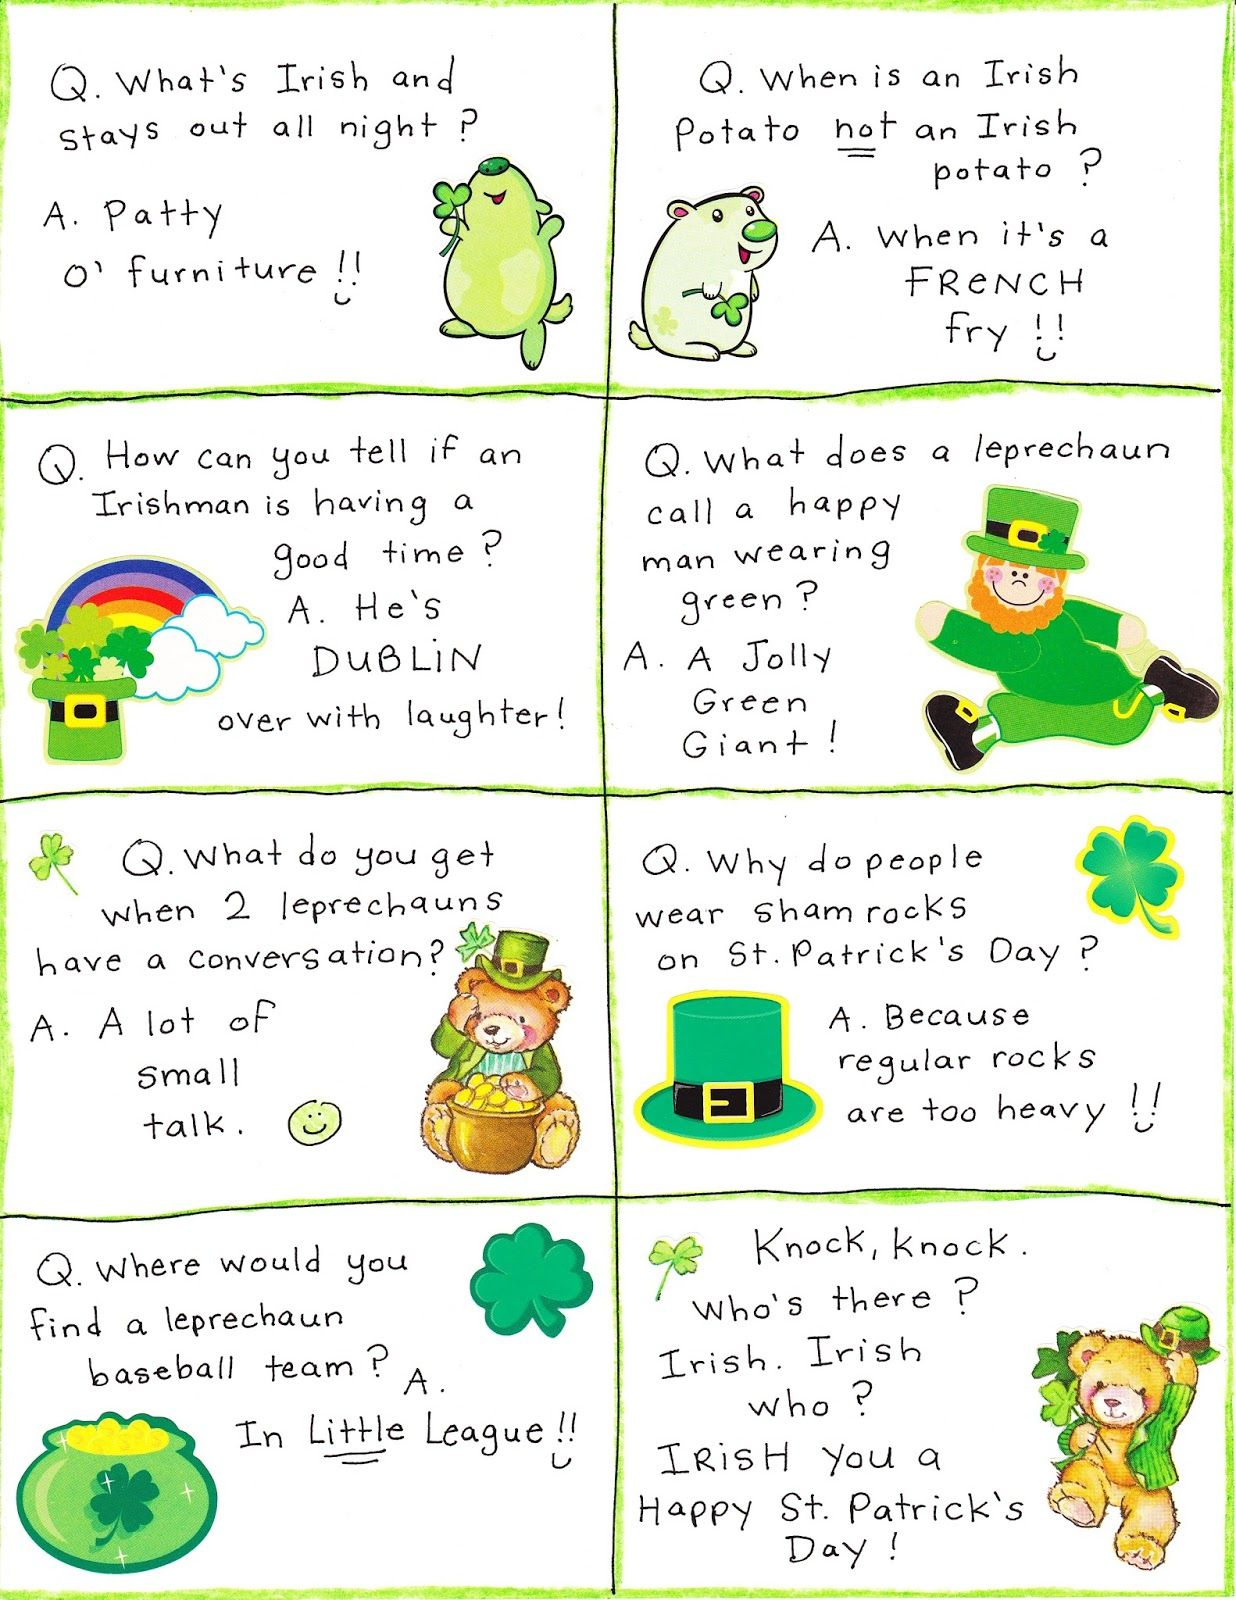 St Patrick S Day Irish Jokes Limericks Riddles One Liners Short Clean Irish Stories